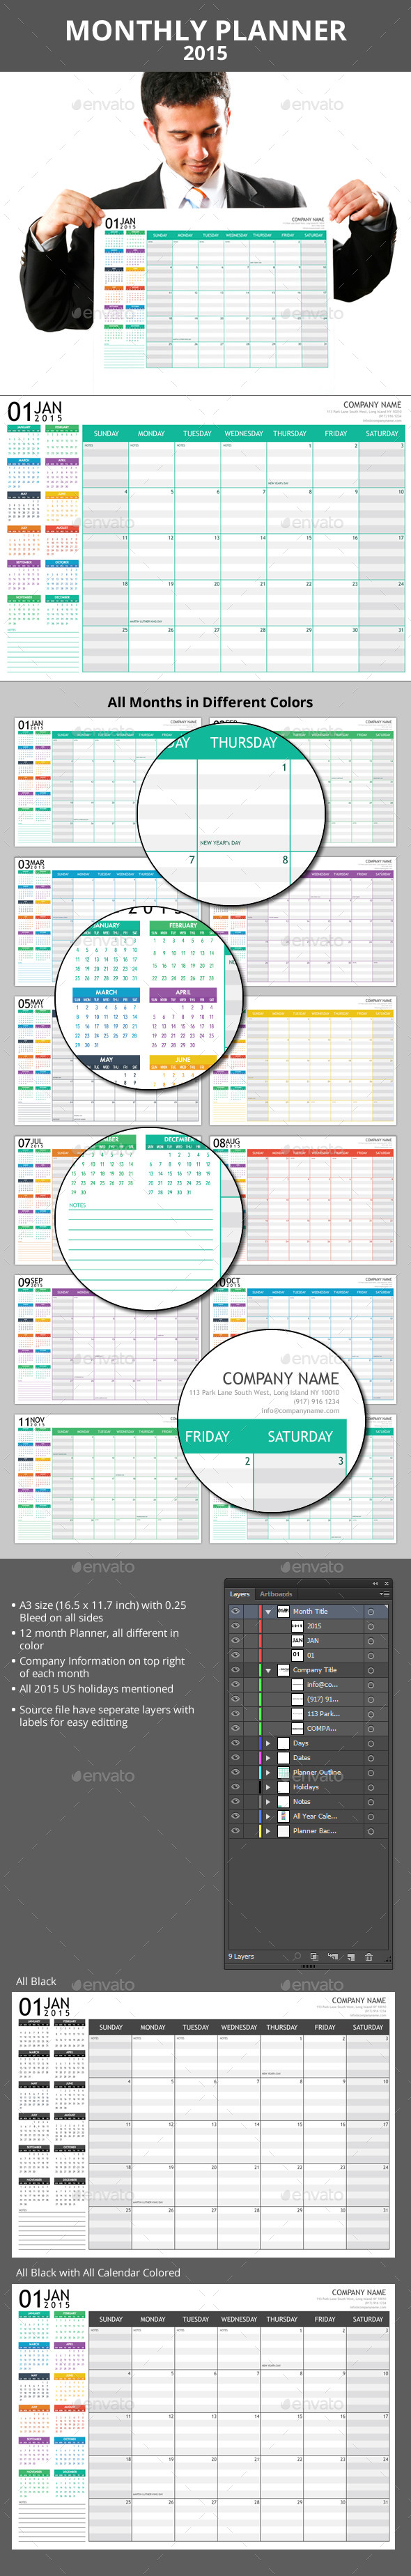 GraphicRiver Monthly Planner 2015 & A3 Poster 9182684